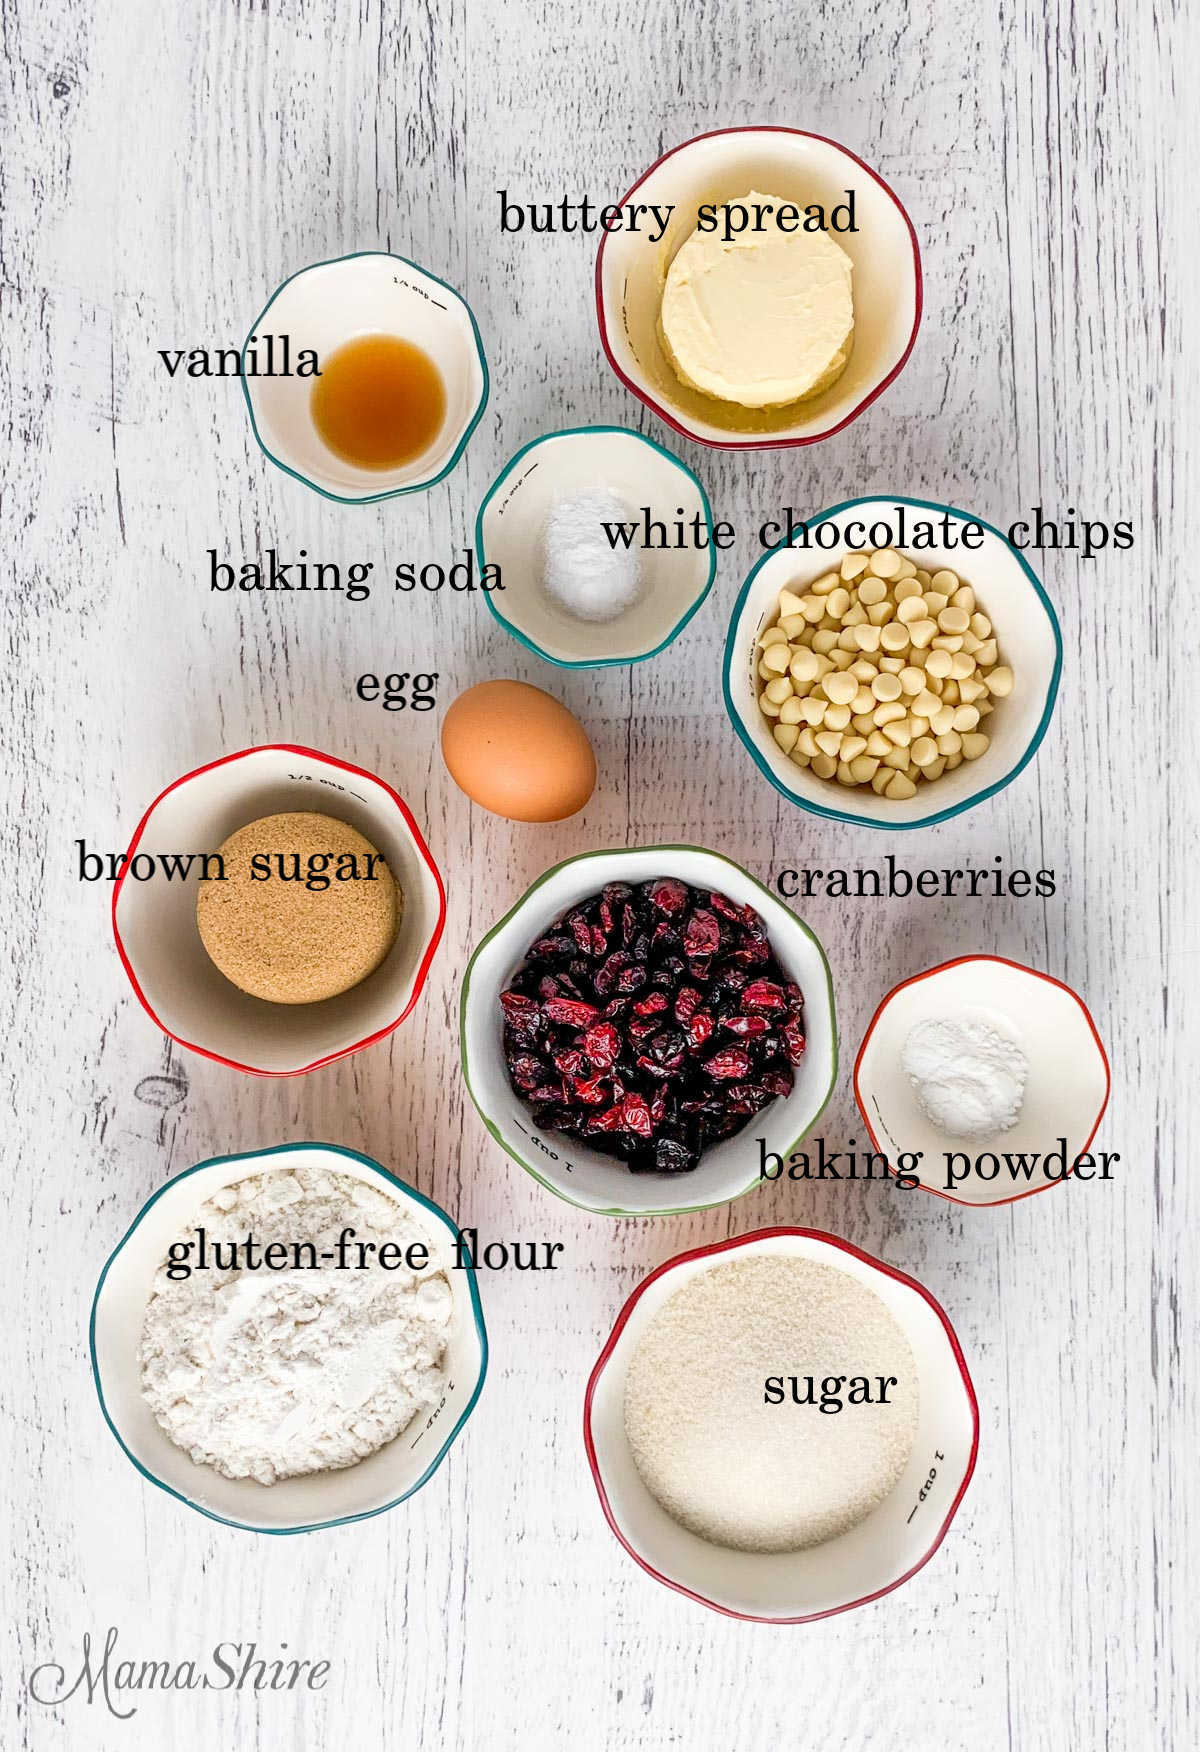 Ingredients for gluten-free white chocolate cranberry cookies.